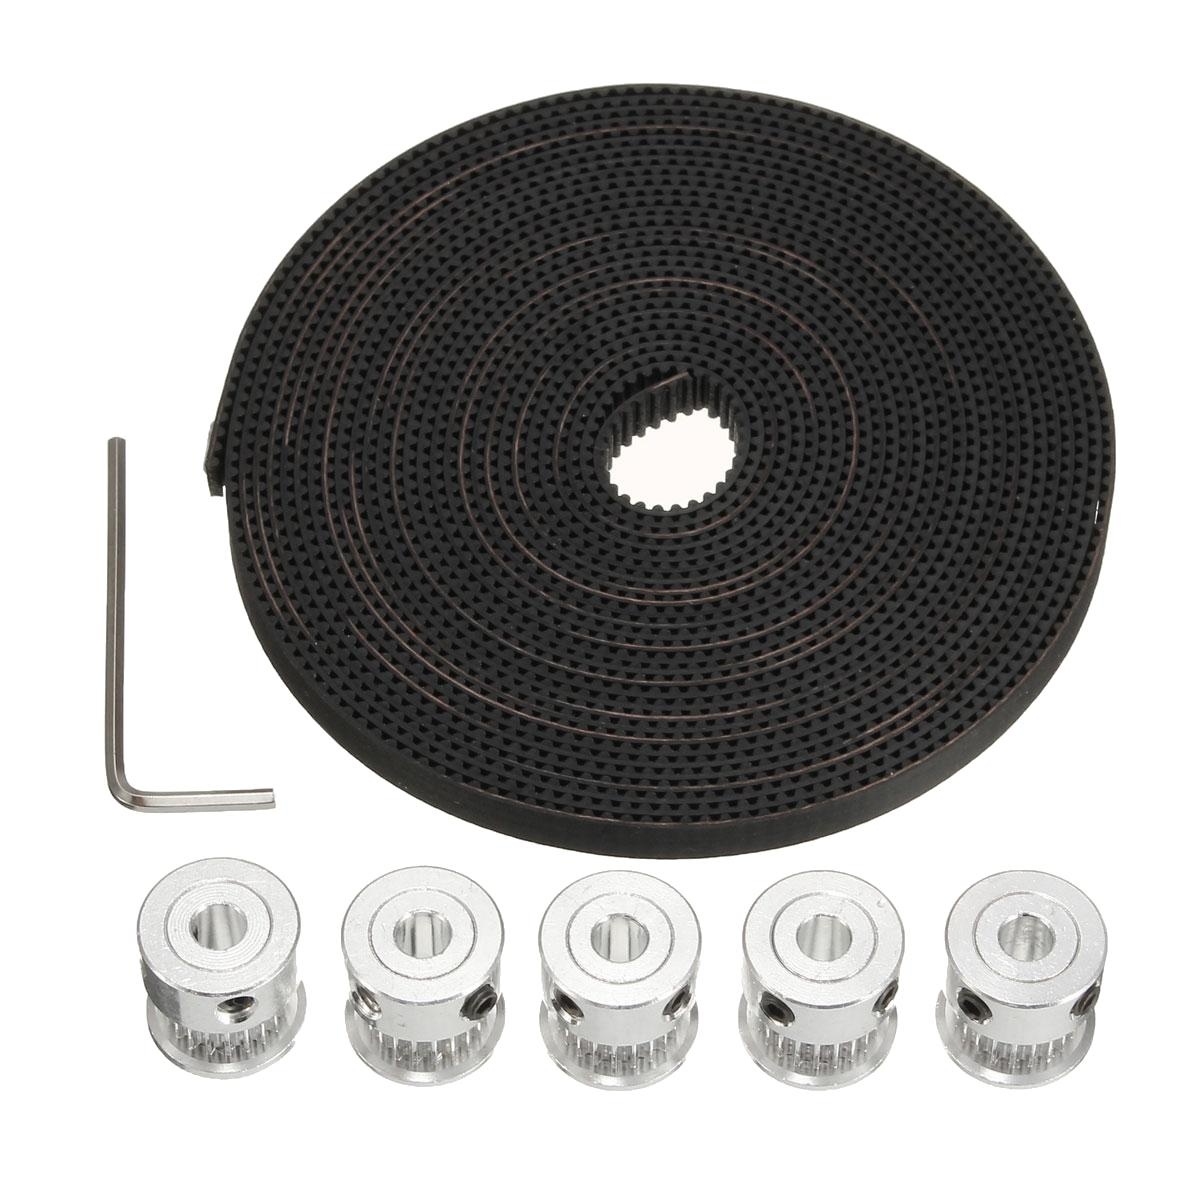 GT2 20 Tooth Timing Pulleys And 5 Meters Of GT2 Belt 3D Printing Reprap S7